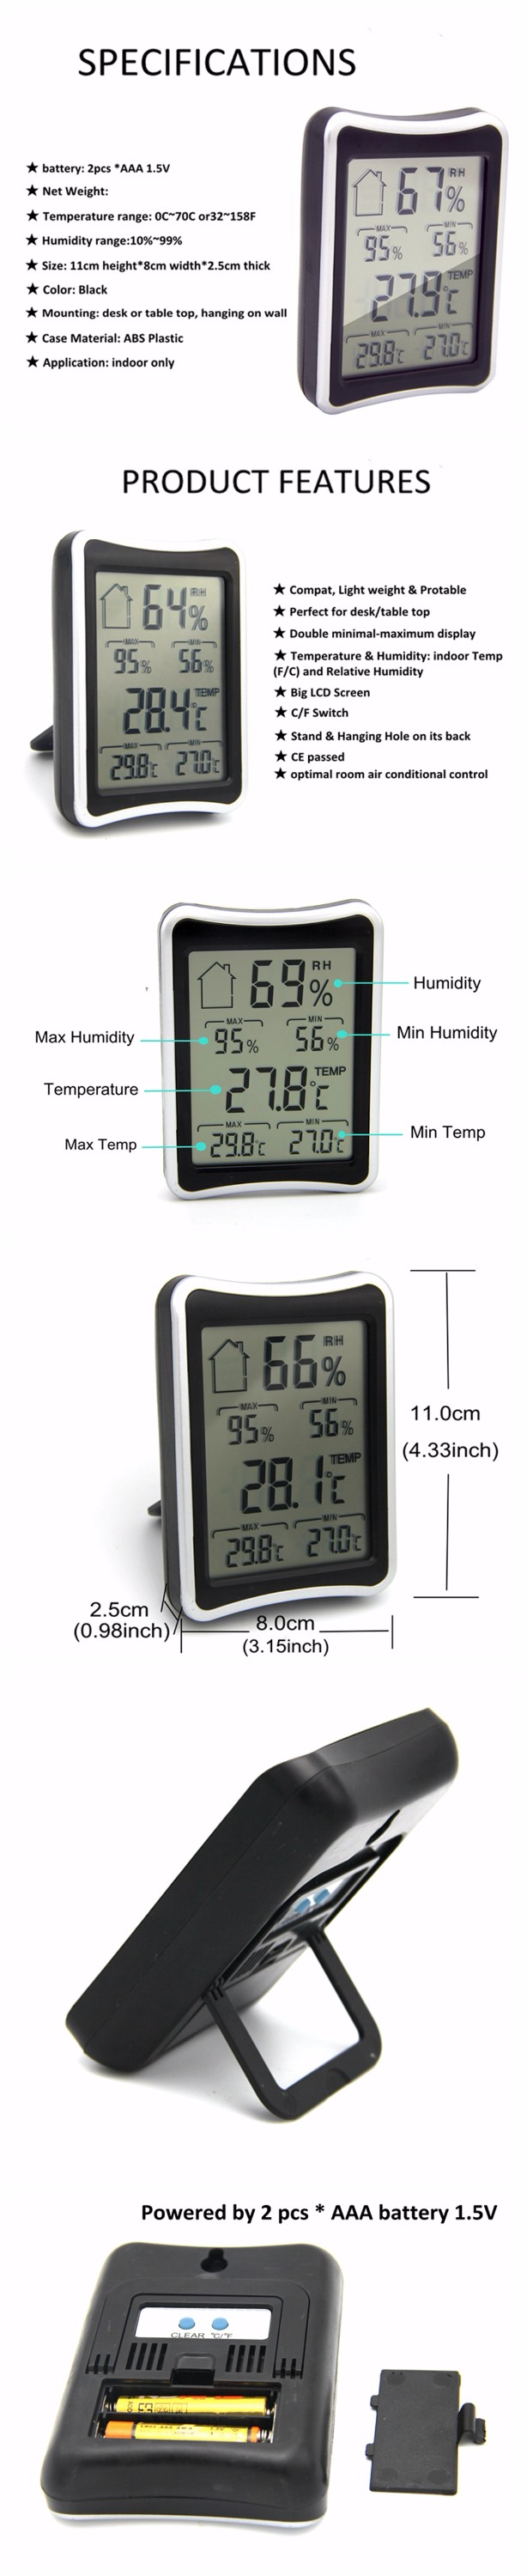 Display Thermometer Hygrometer Humidity Thermometer with Max Min Record Function for Warehouse